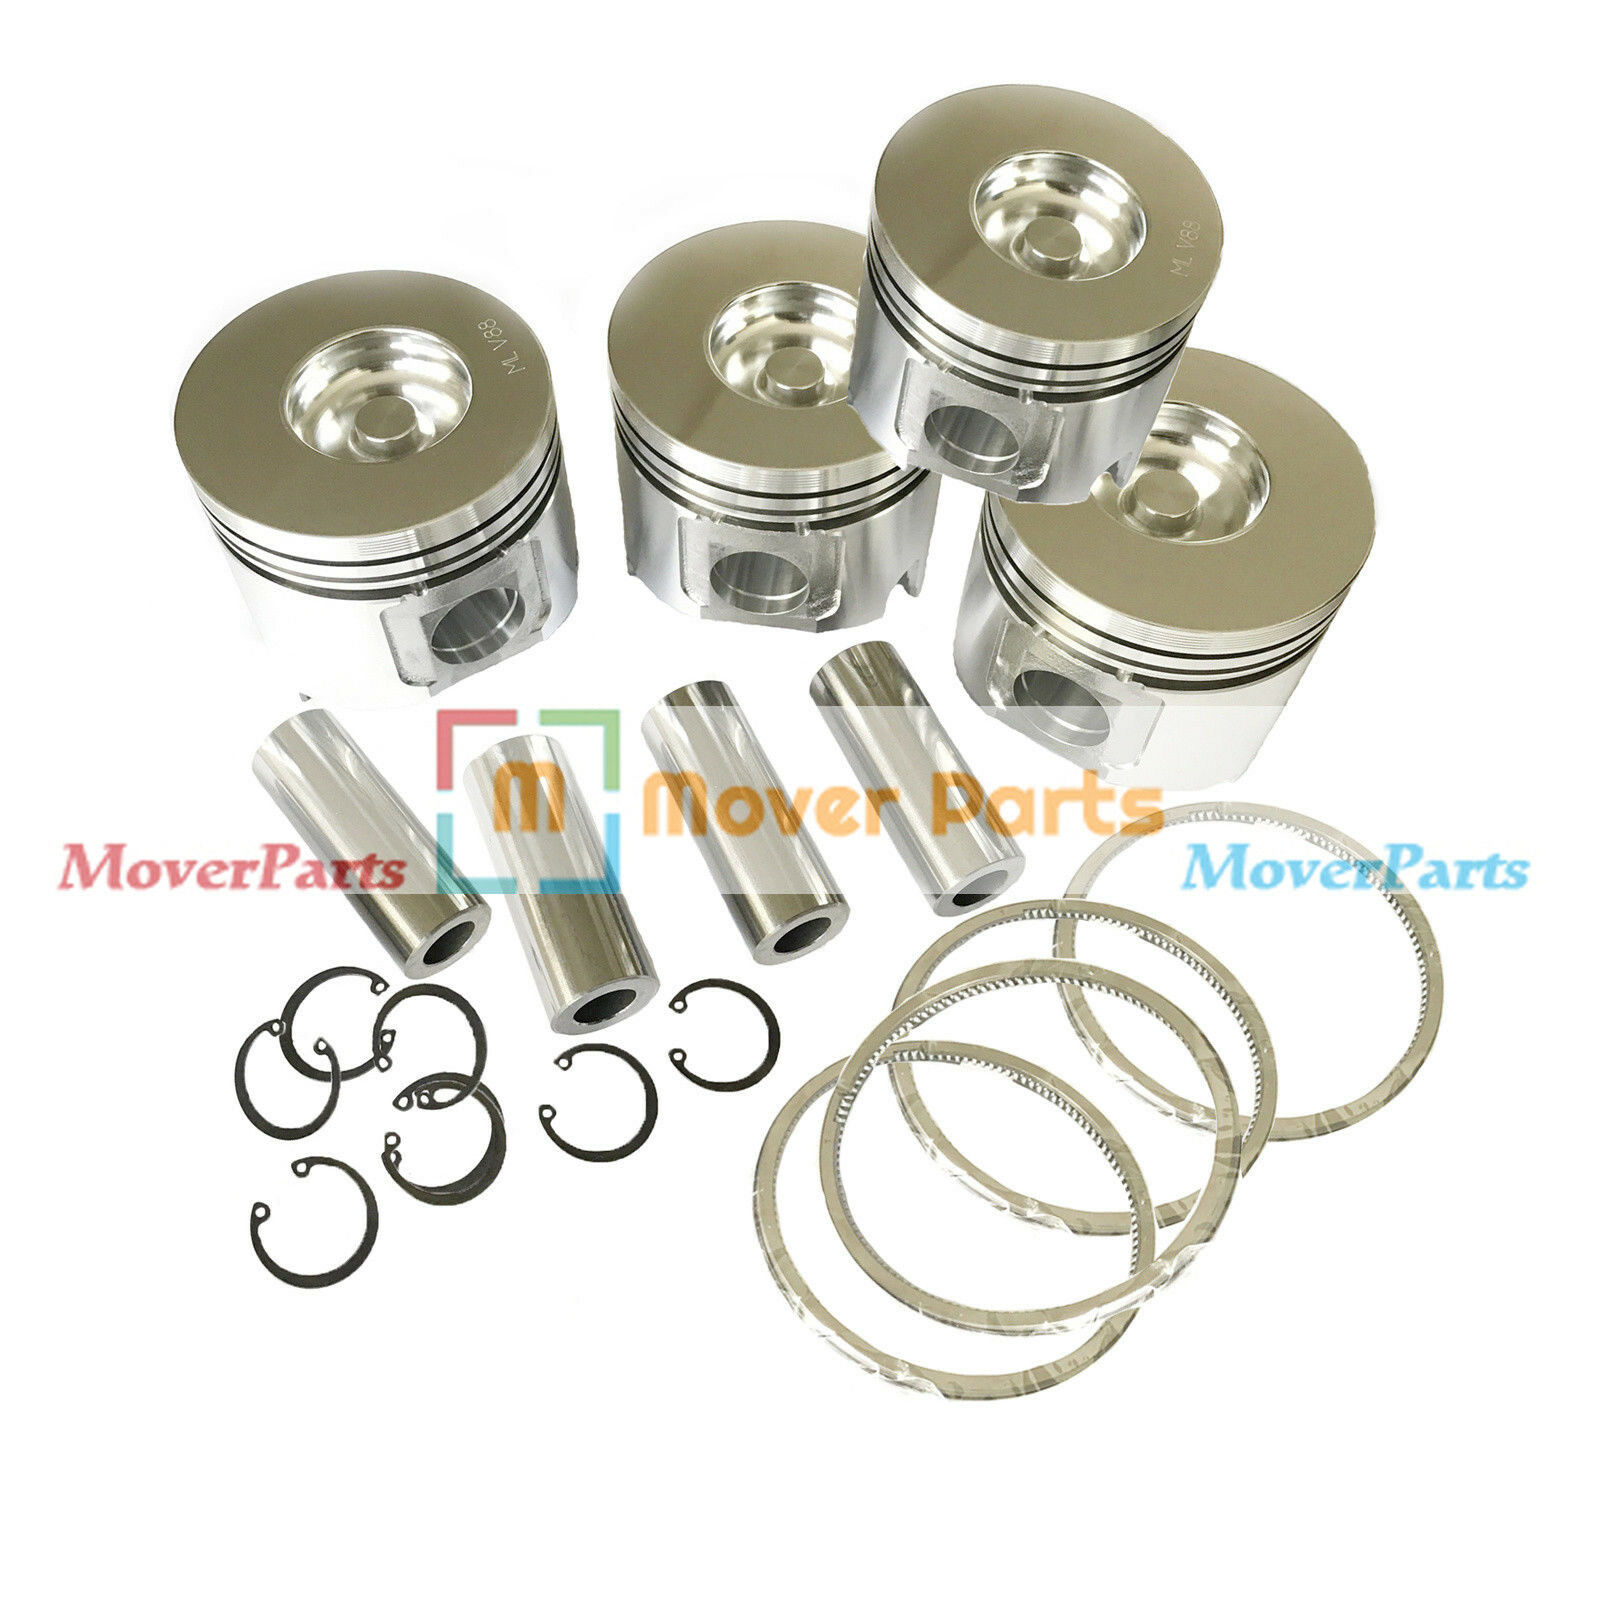 Piston & Ring Kit STD YM123907-22081 YM123907-22050 for Yanmar 4TNV106 4TNV106T